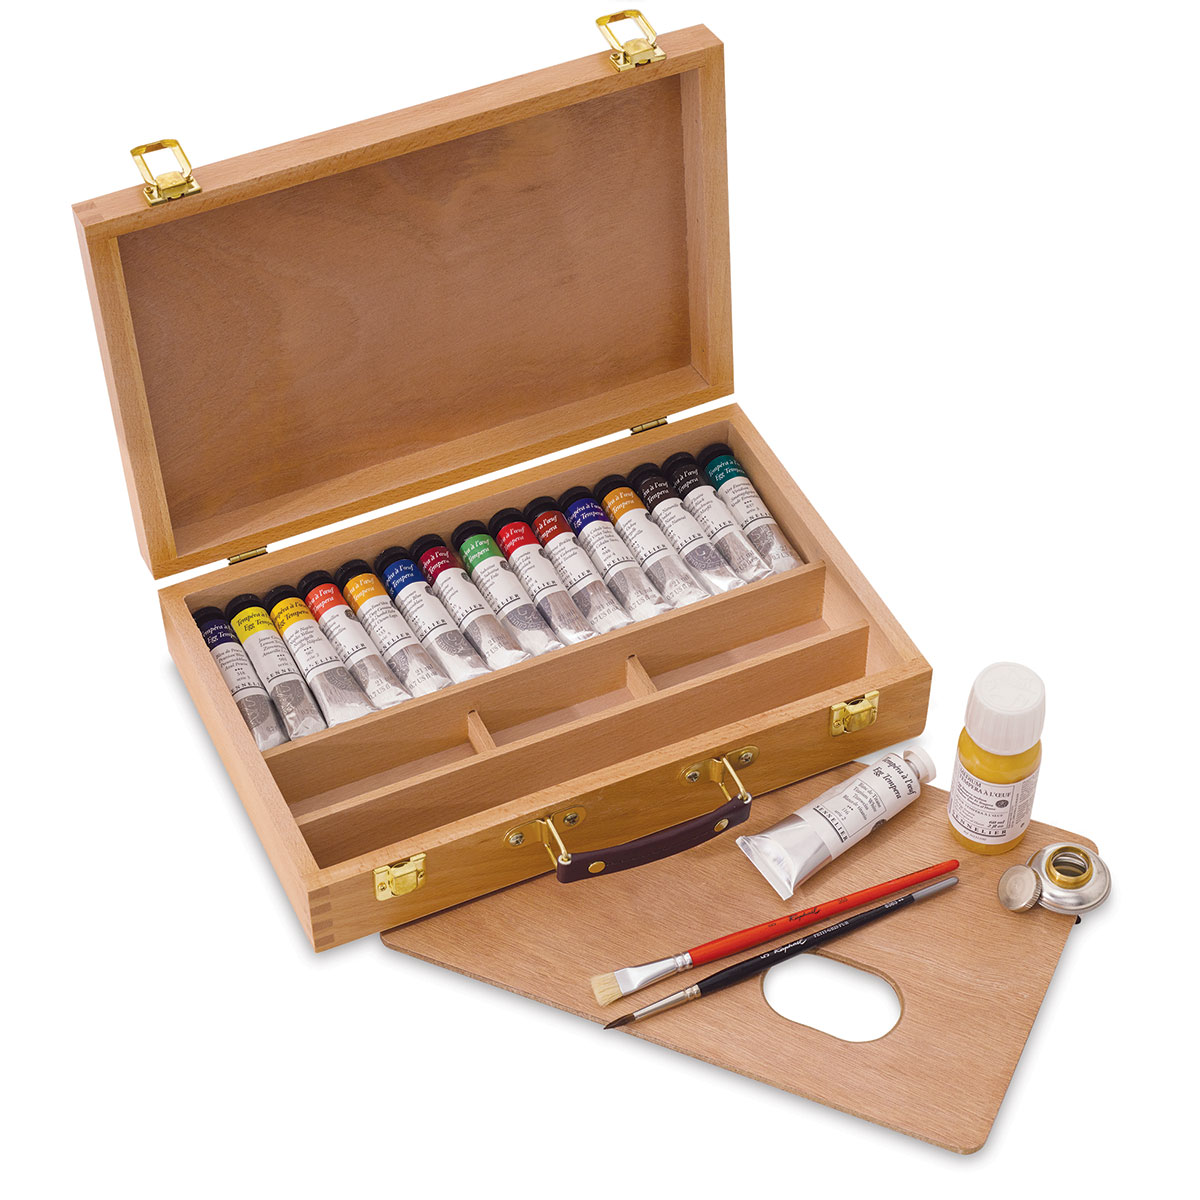 Sennelier Artists Egg Tempera - Assorted Deluxe Wood Box Set, Set of 13 colors